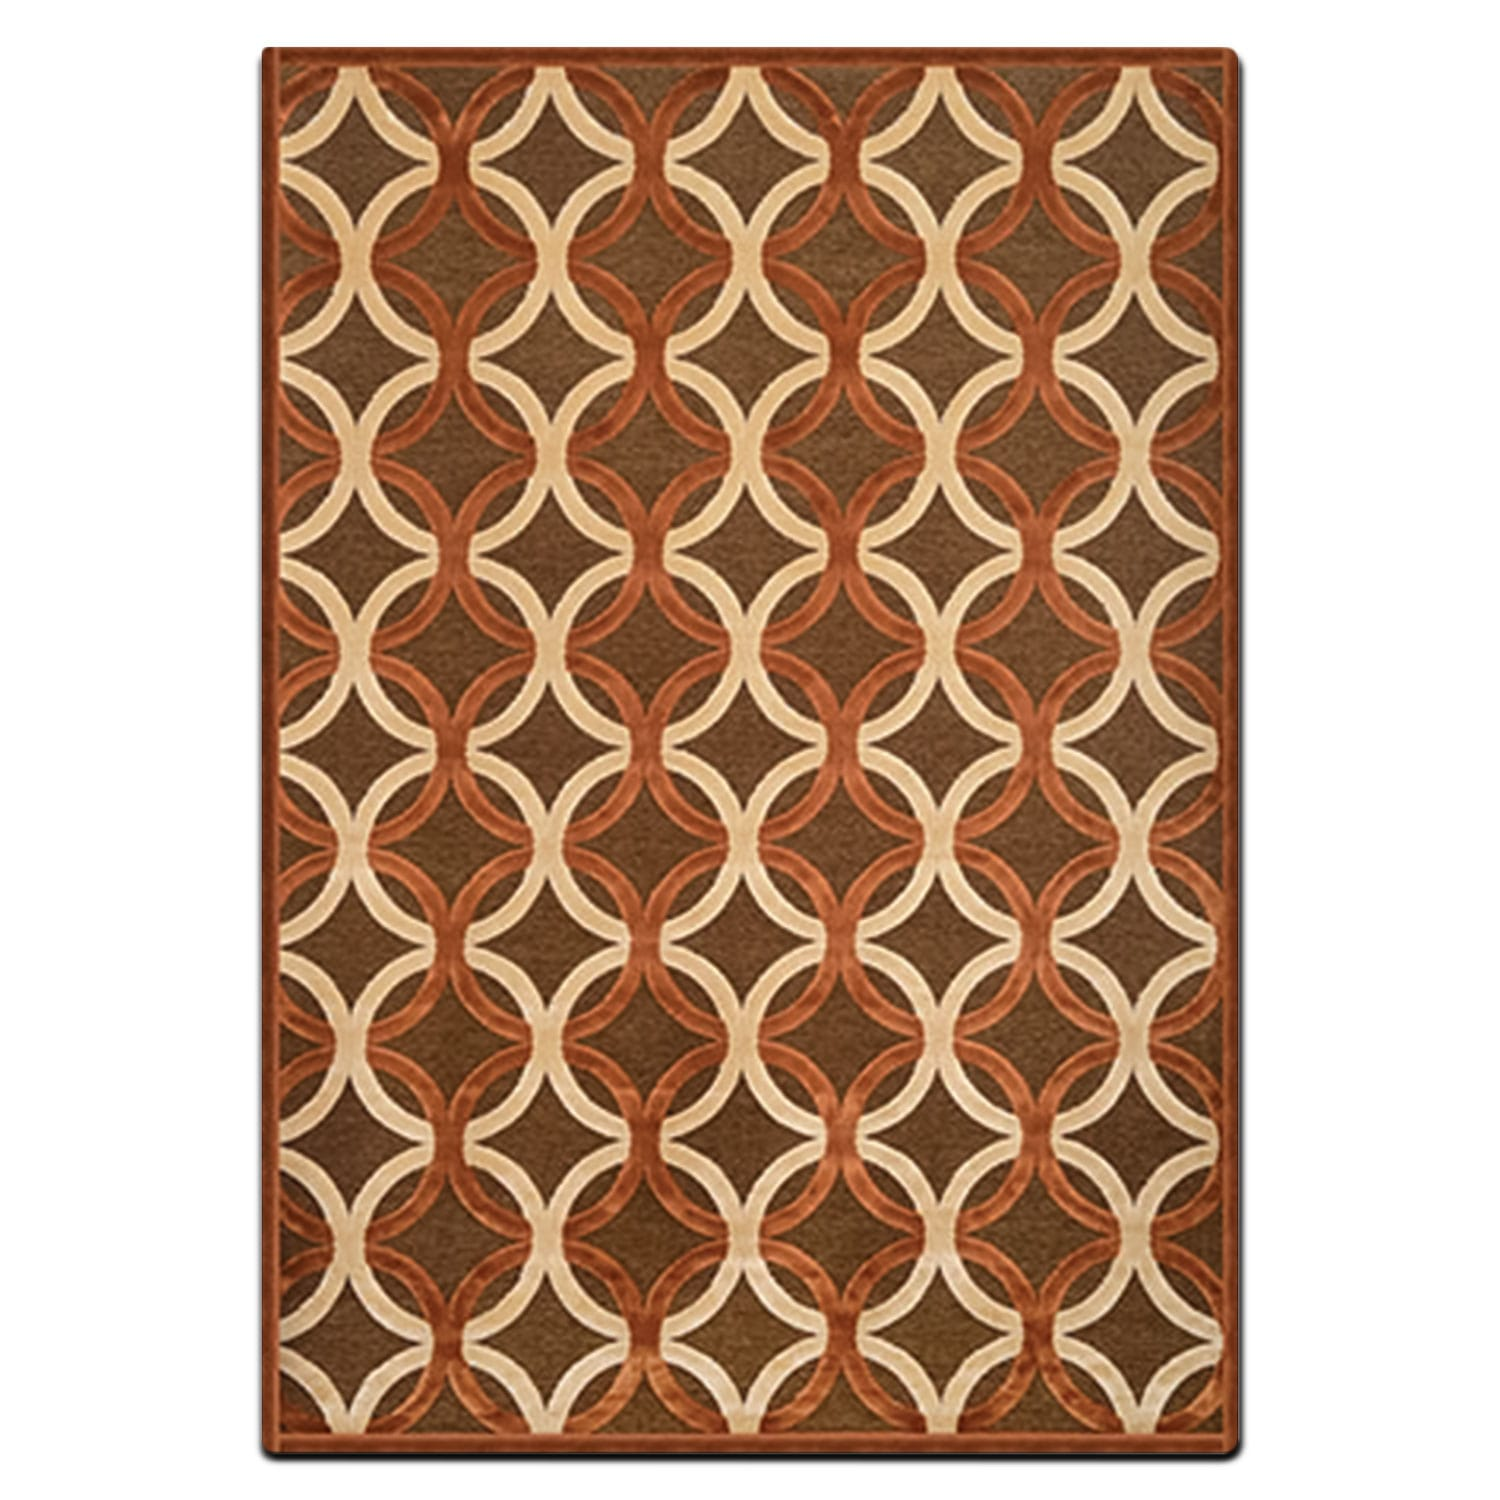 Napa 8' X 10' Area Rug - Rust And Ivory